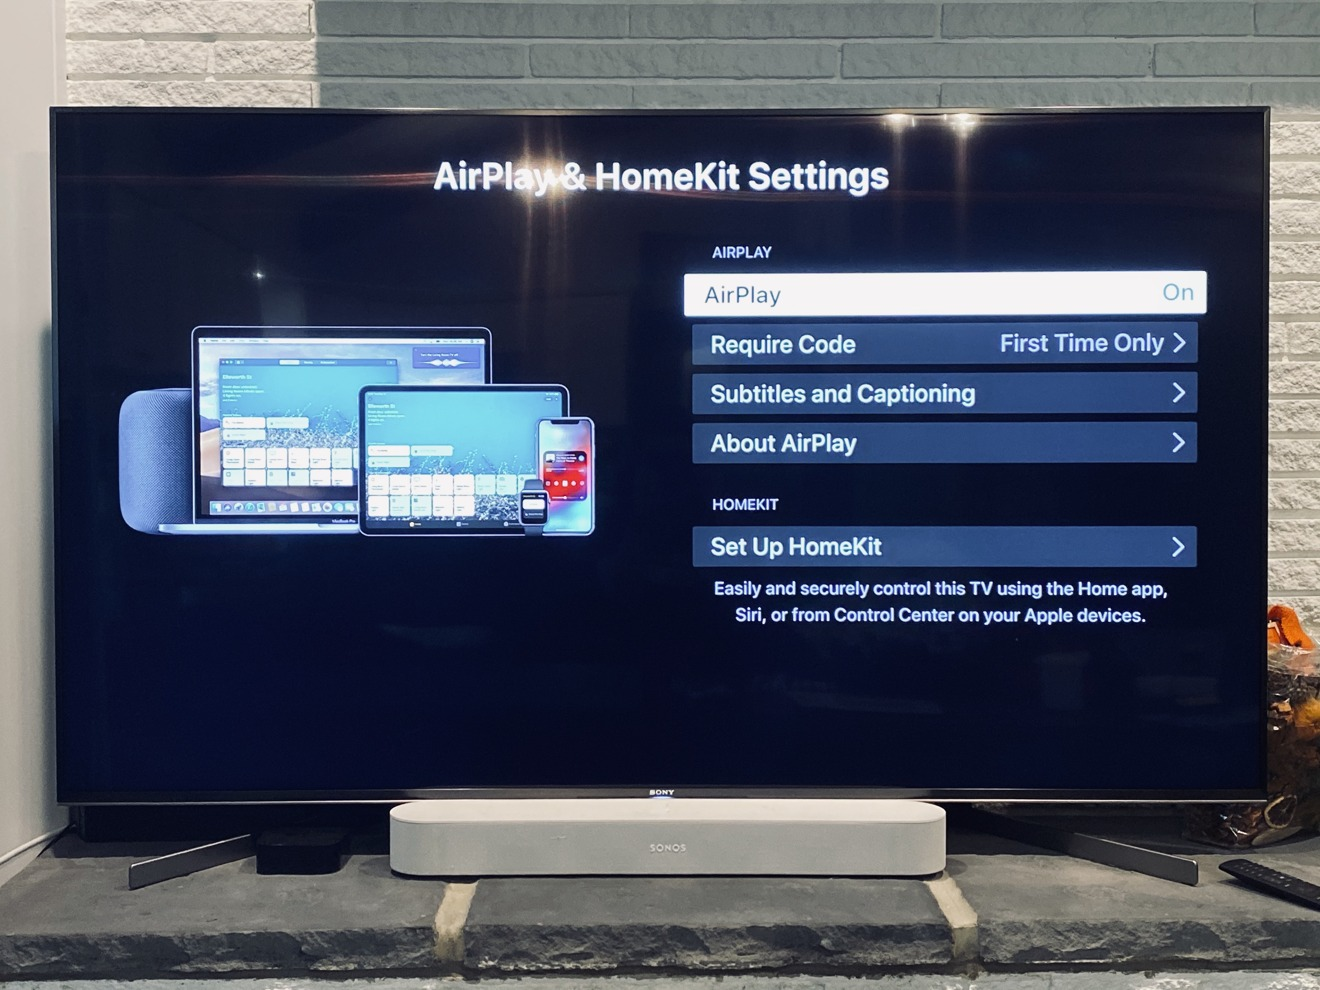 AirPlay and HomeKit Settings on the Sony X950G smart TV